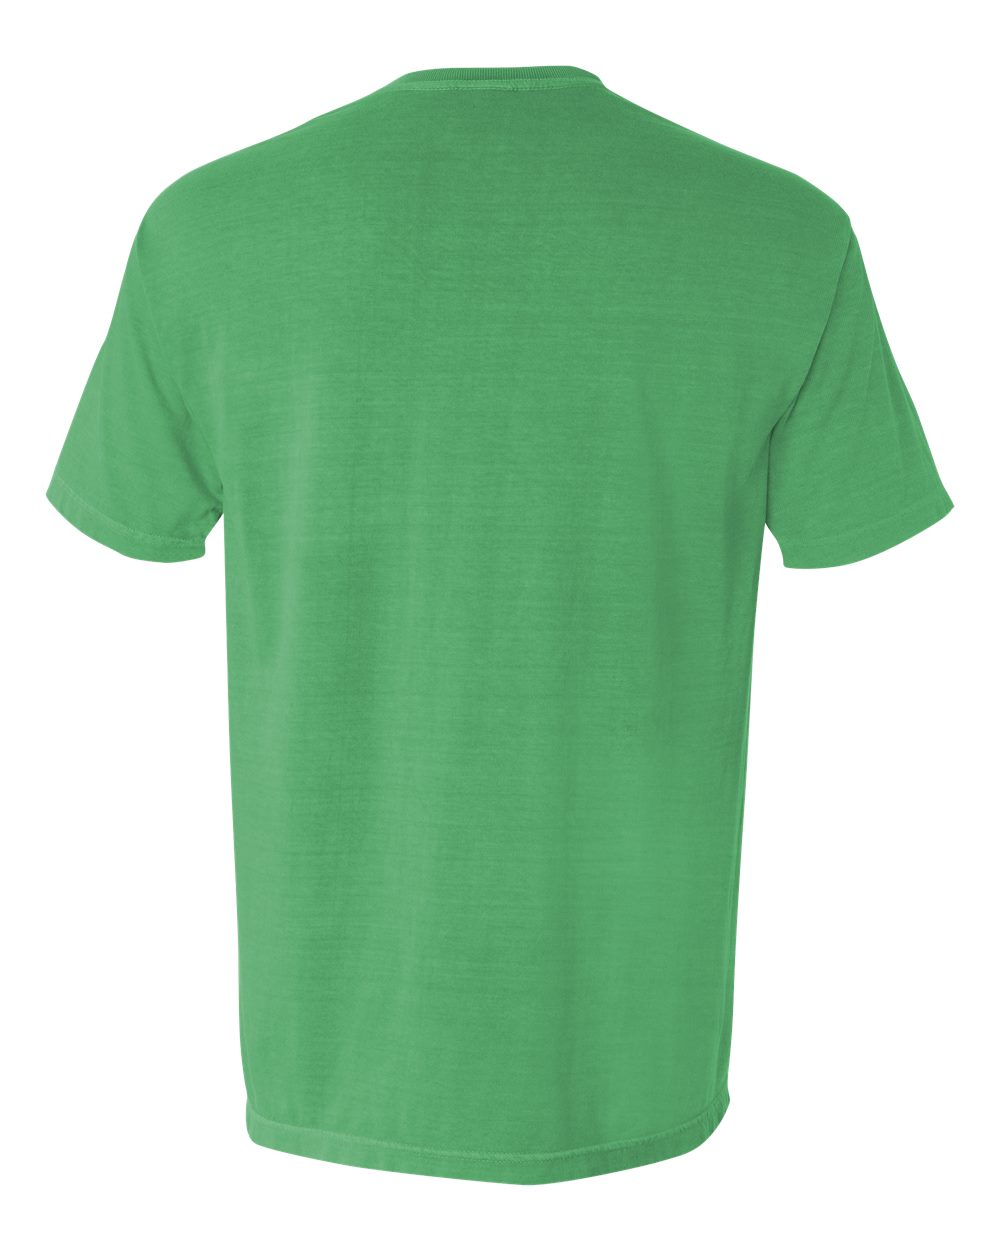 Comfort-Colors-Men-039-s-6-1-oz-Garment-Dyed-Pocket-T-Shirt-6030CC-S-3XL thumbnail 85